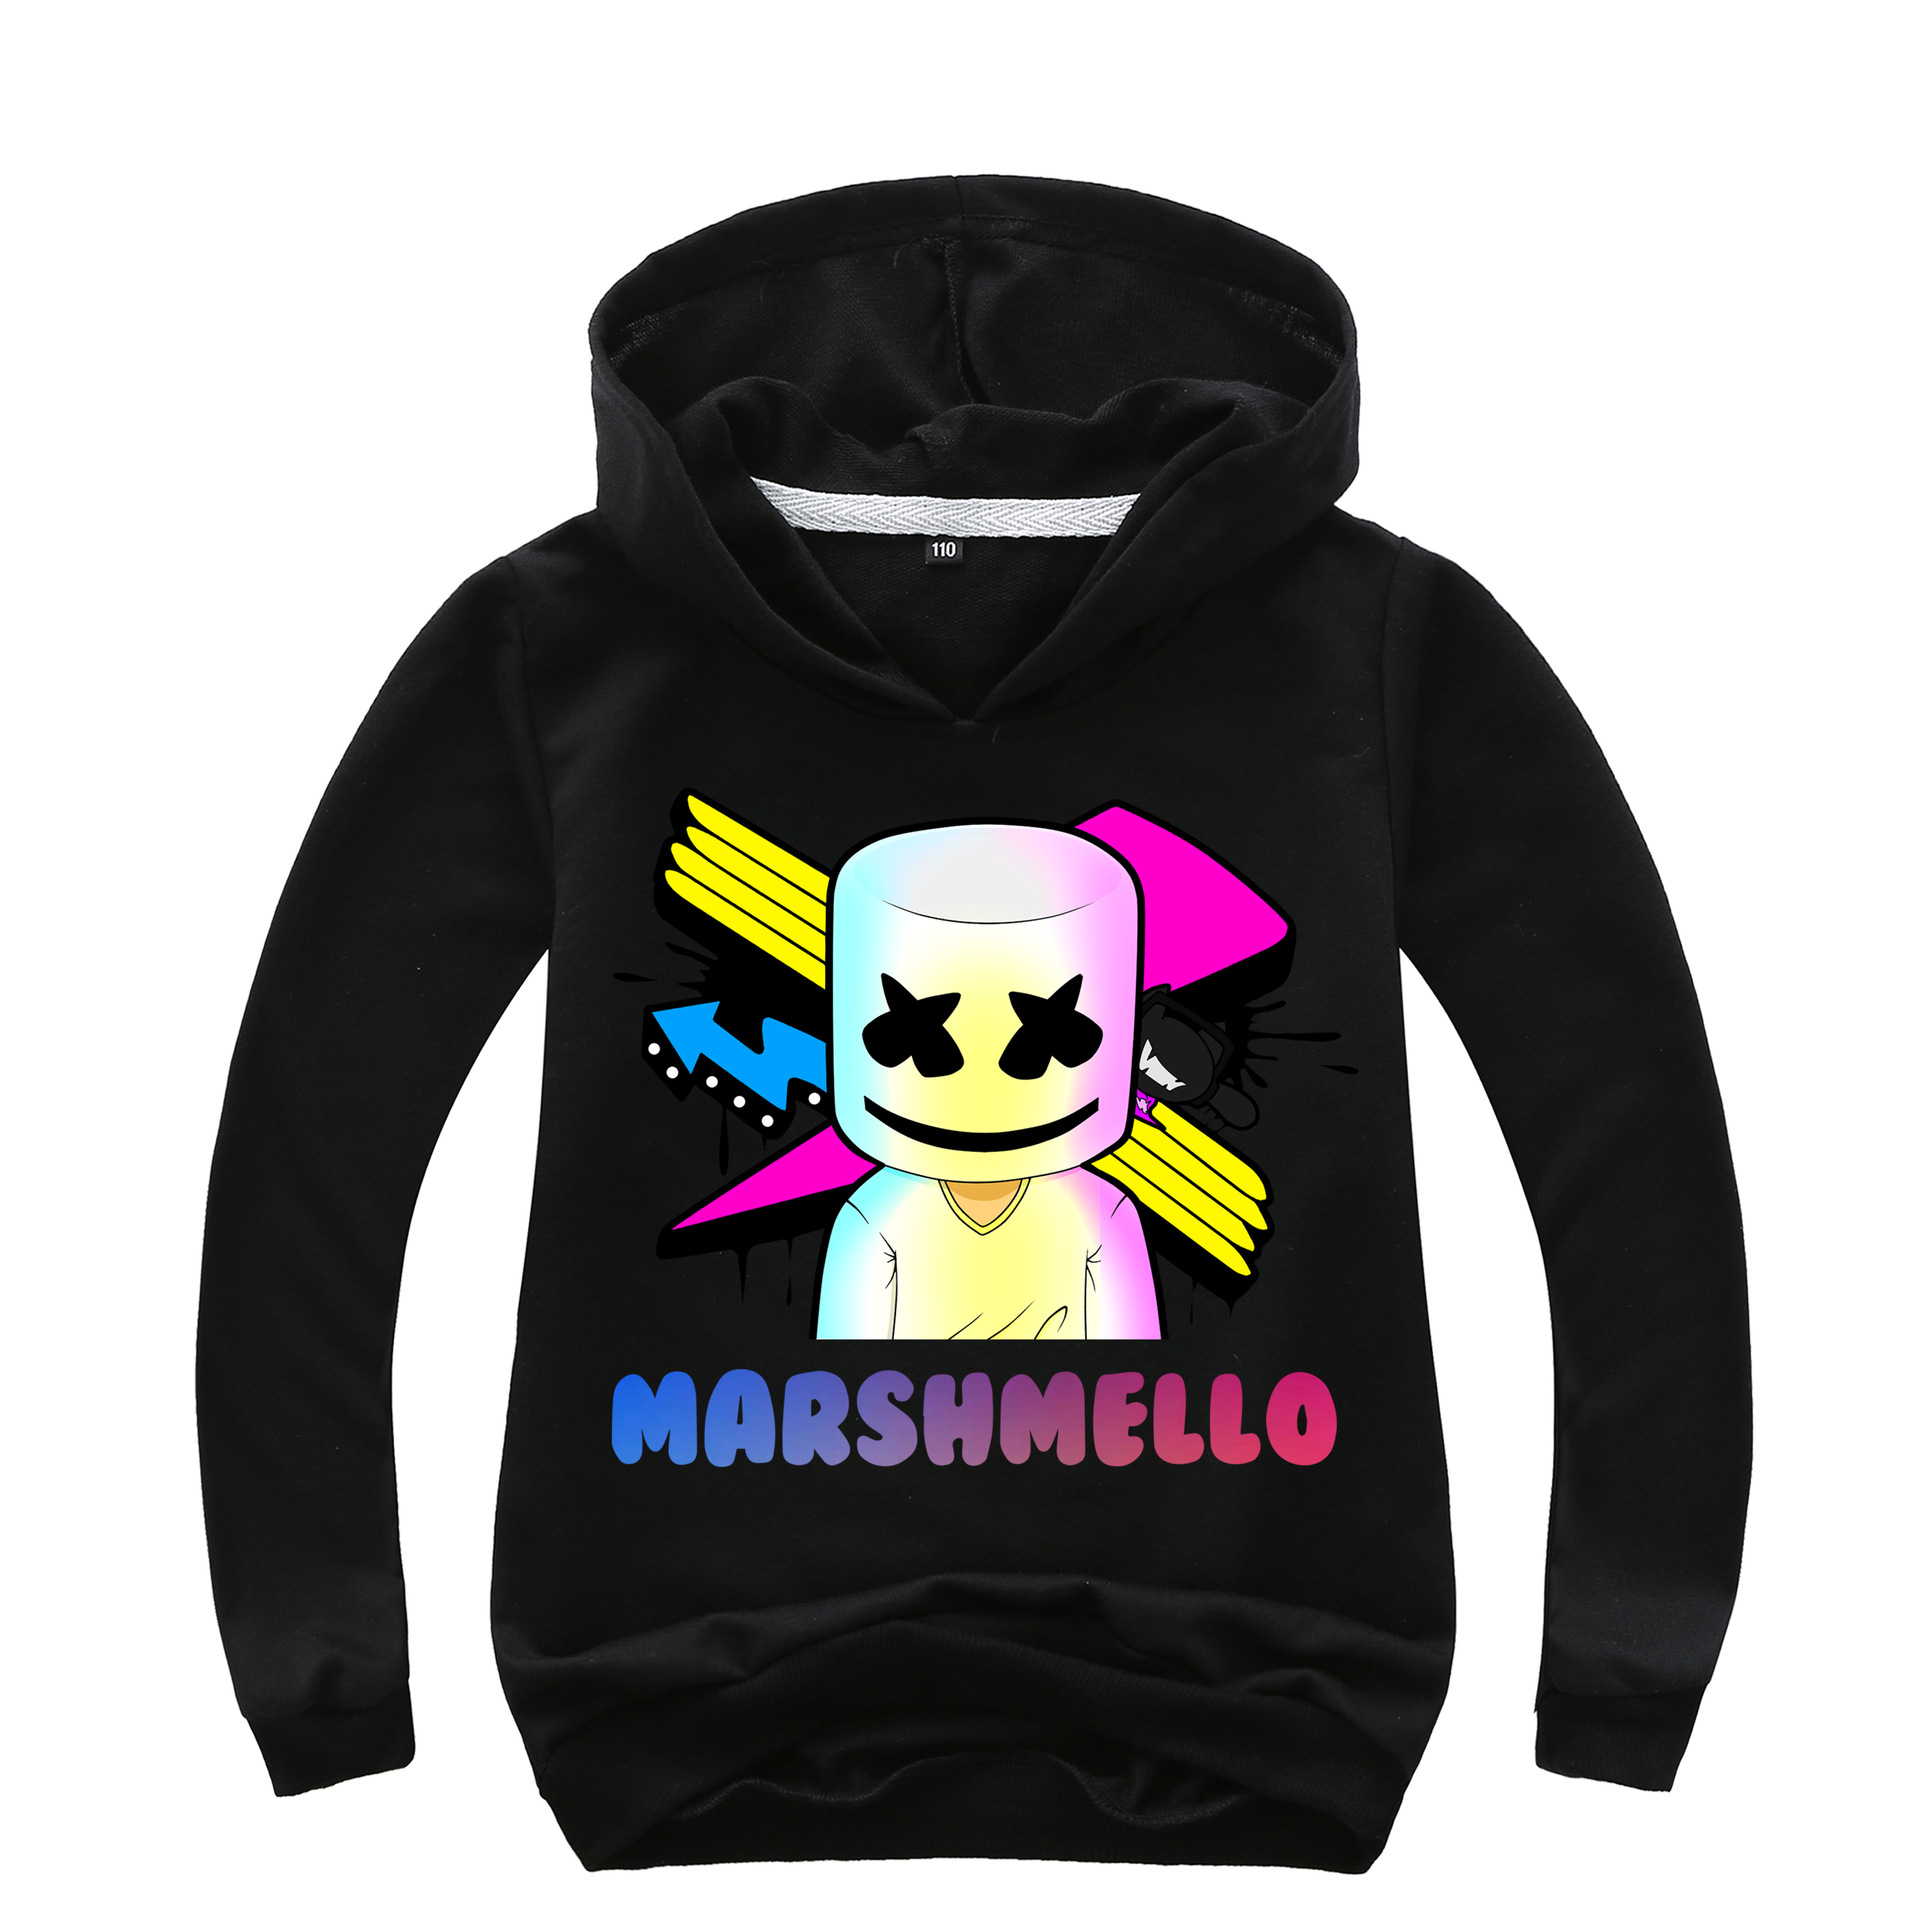 2019 New Style Childrenswear Marshmello Cotton Candy DJ Fashion Coat Hoodie 0232